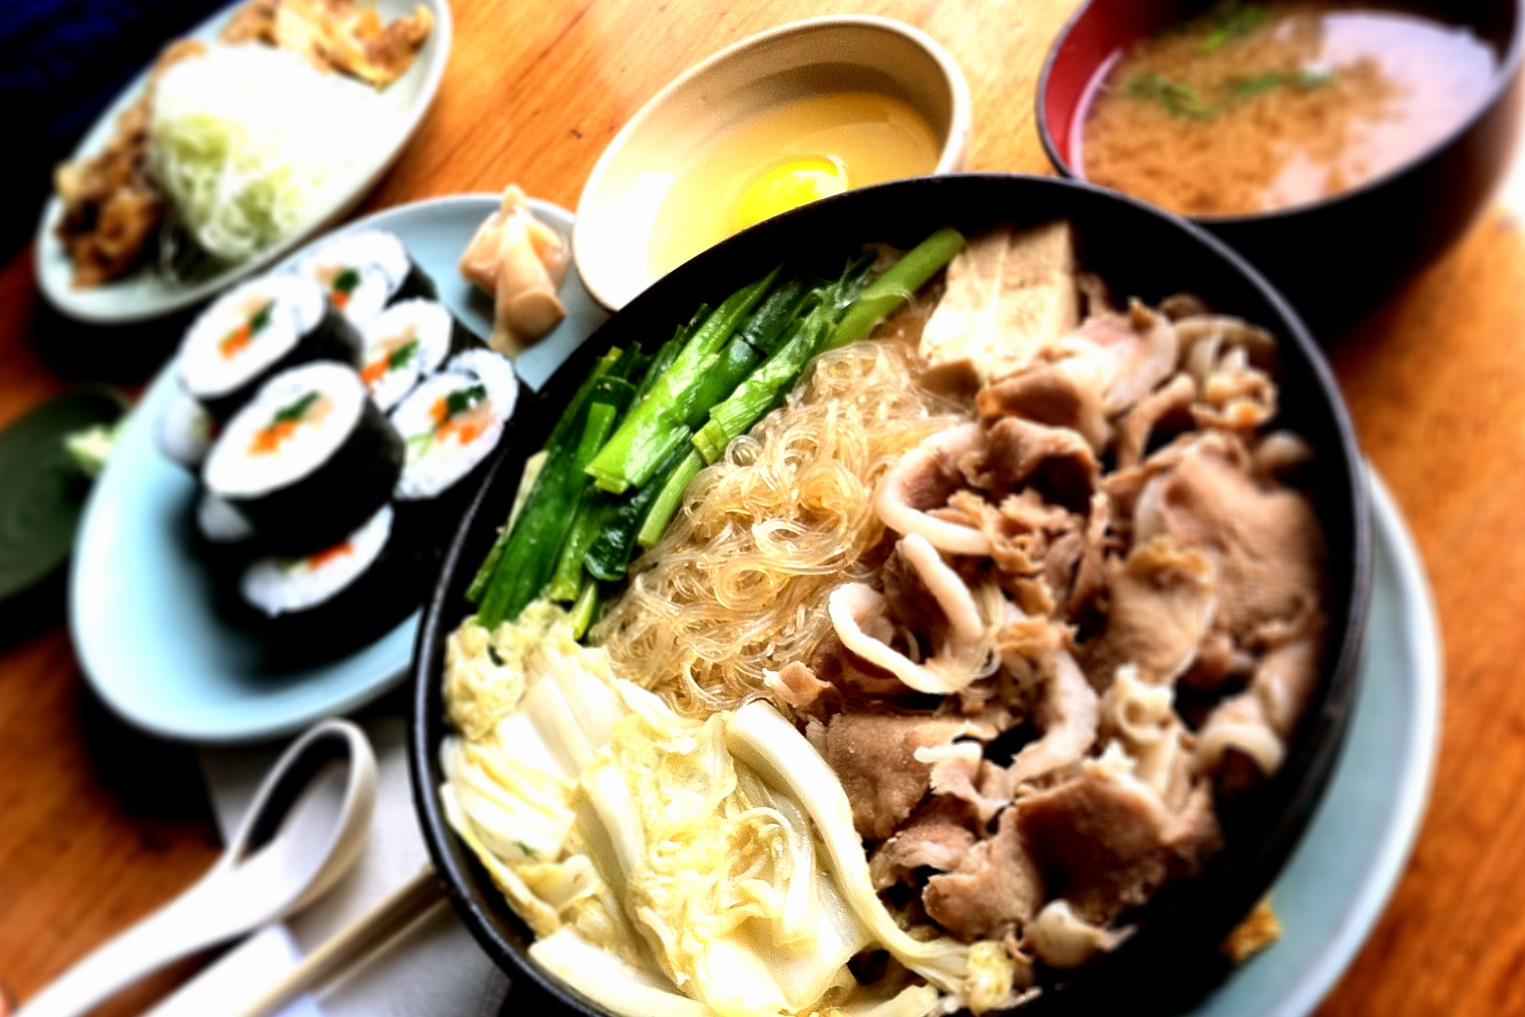 Japanese restaurant food images for Restaurant cuisine